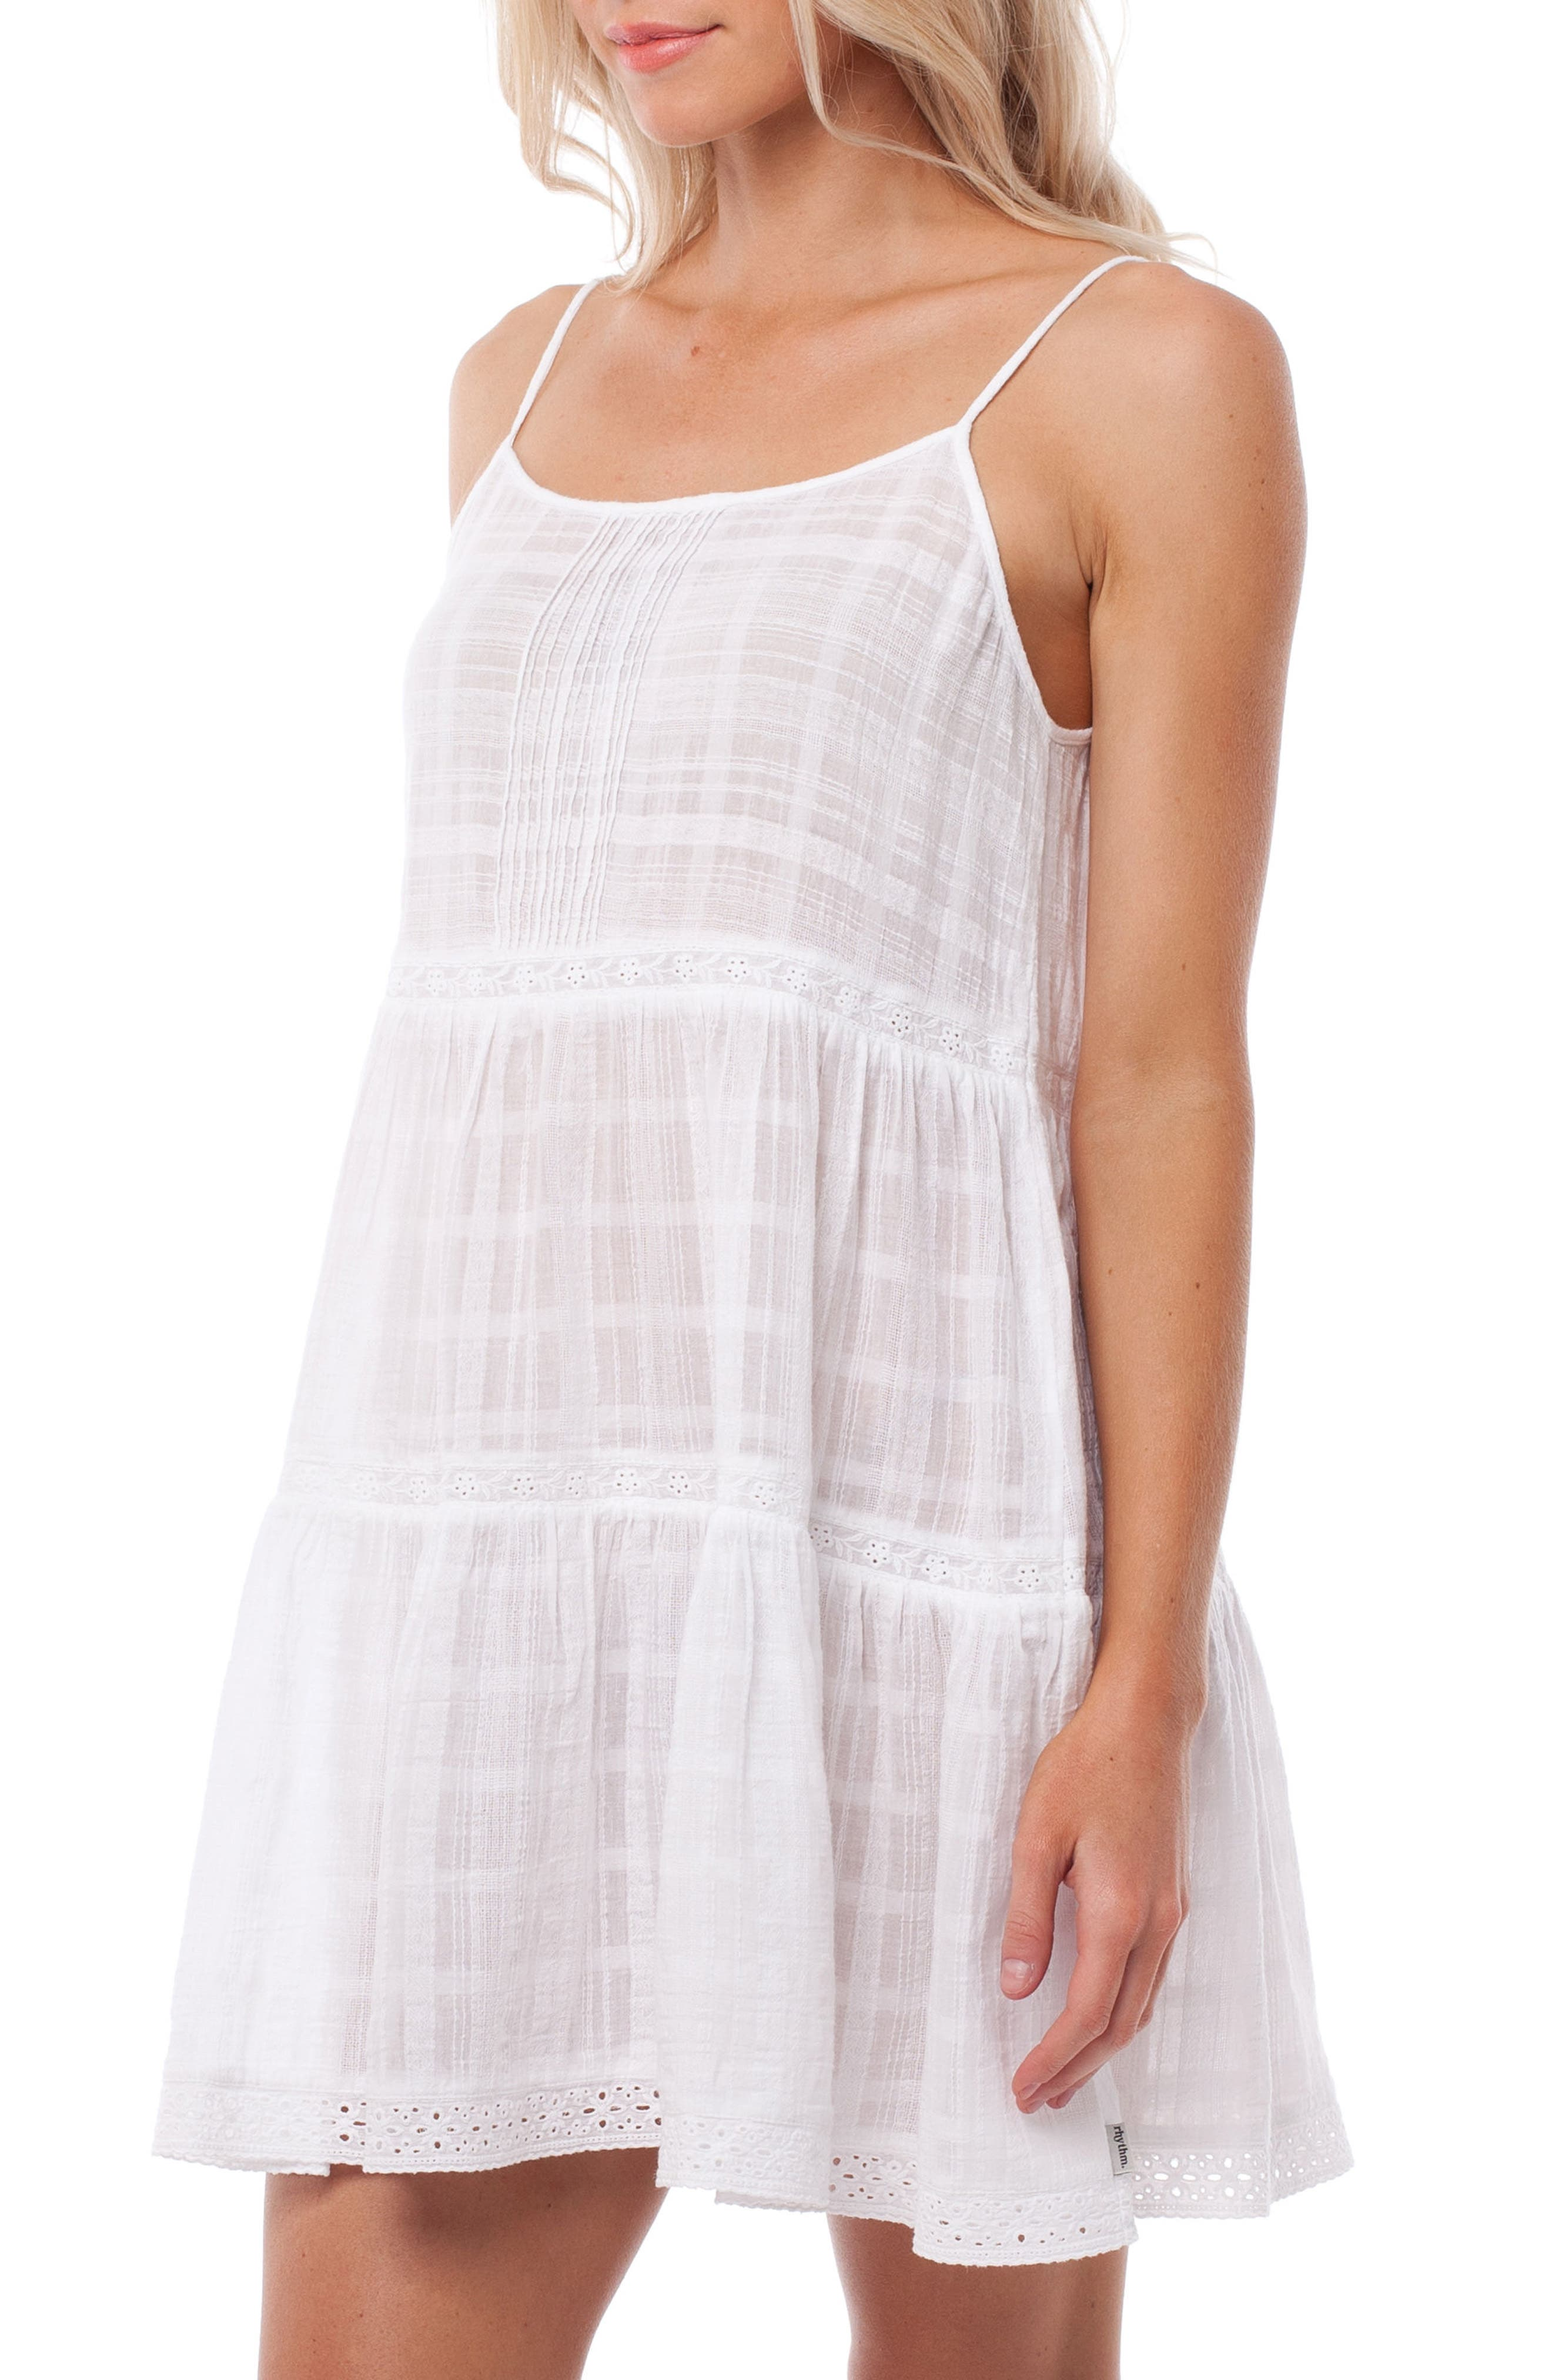 Capetown Cover-Up Dress,                             Alternate thumbnail 3, color,                             White